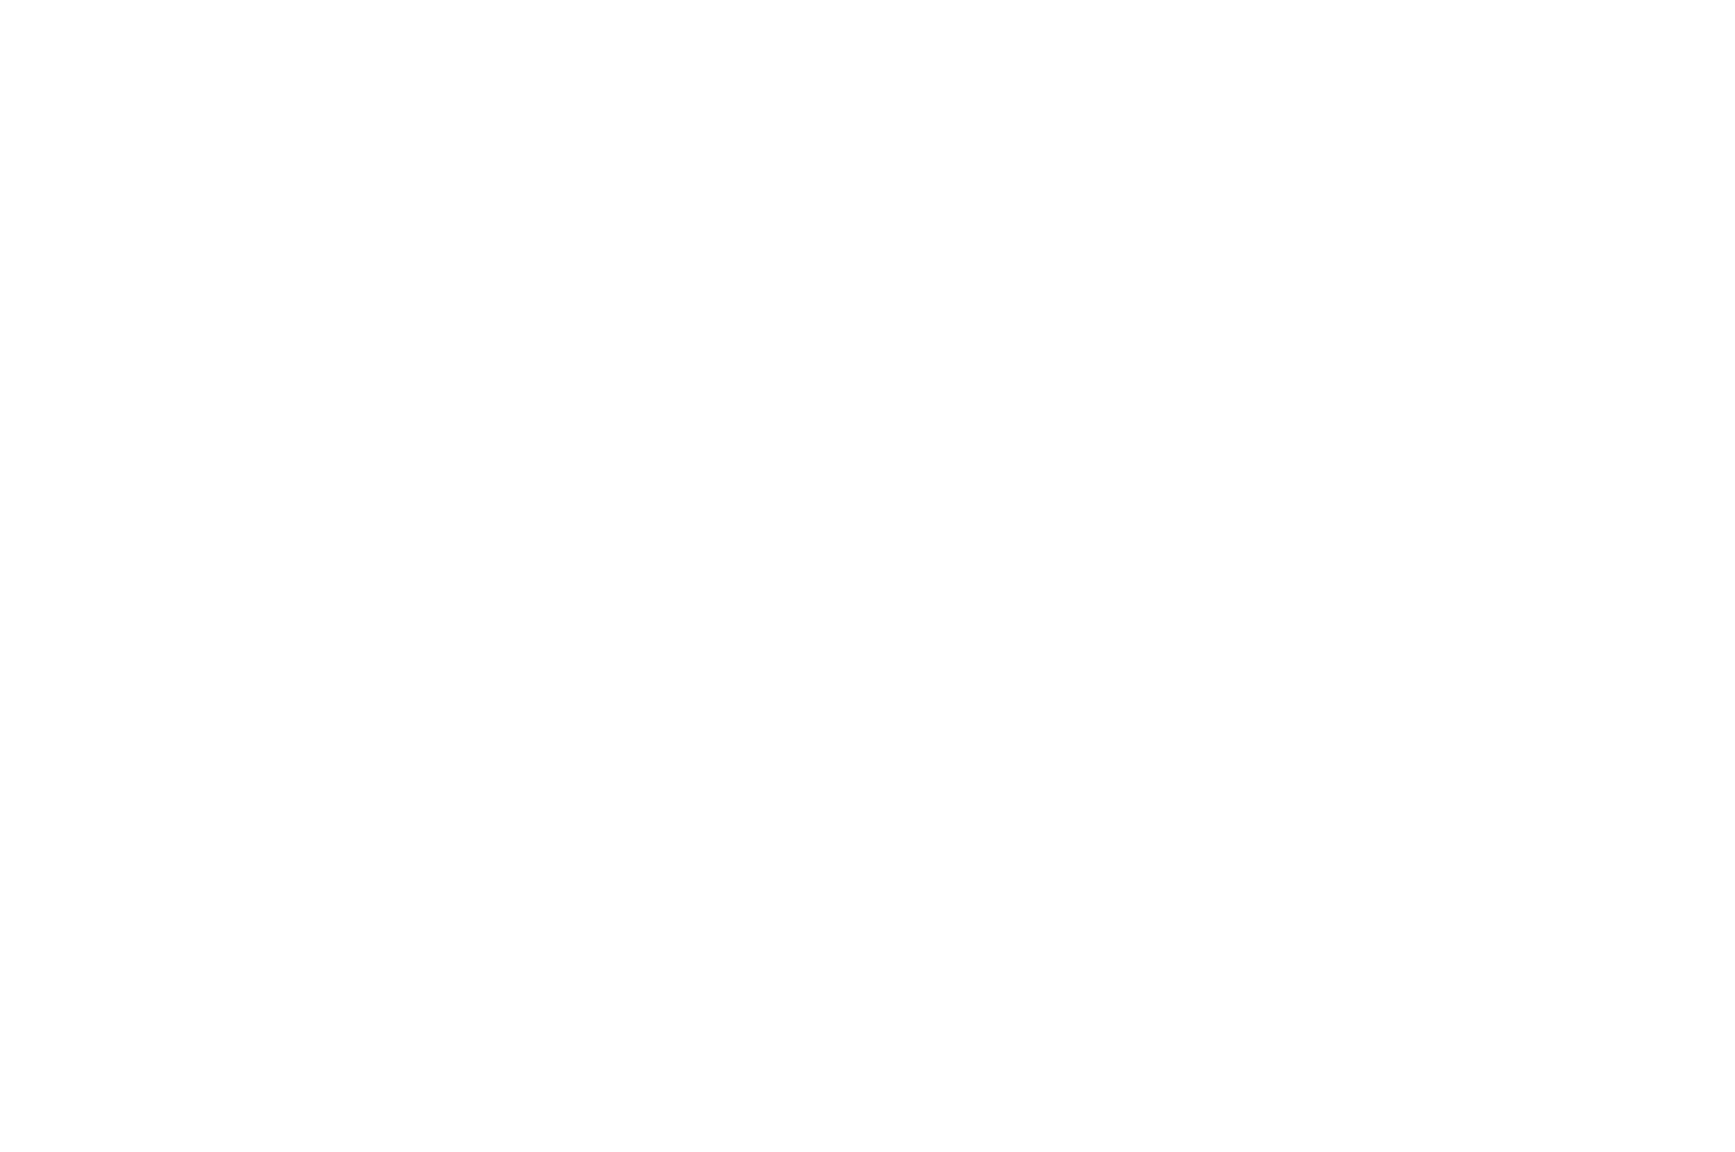 OFFICIAL SELECTION - Miami Independent Film Festival - 2016.png